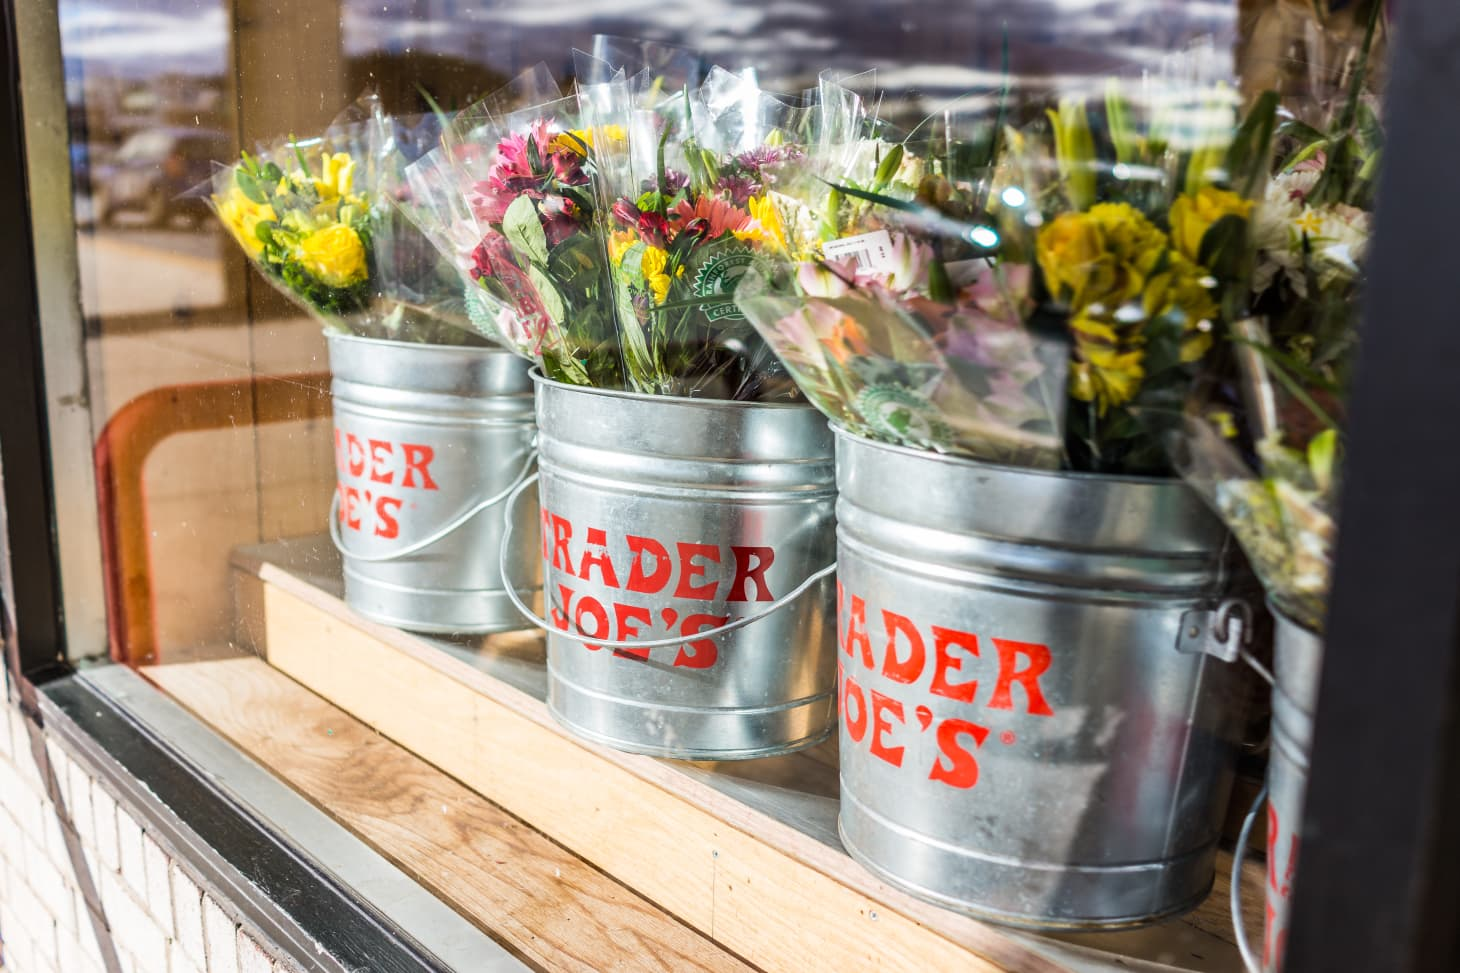 Cheapest Flowers - Trader Joe's, Costco, Whole Foods | Kitchn